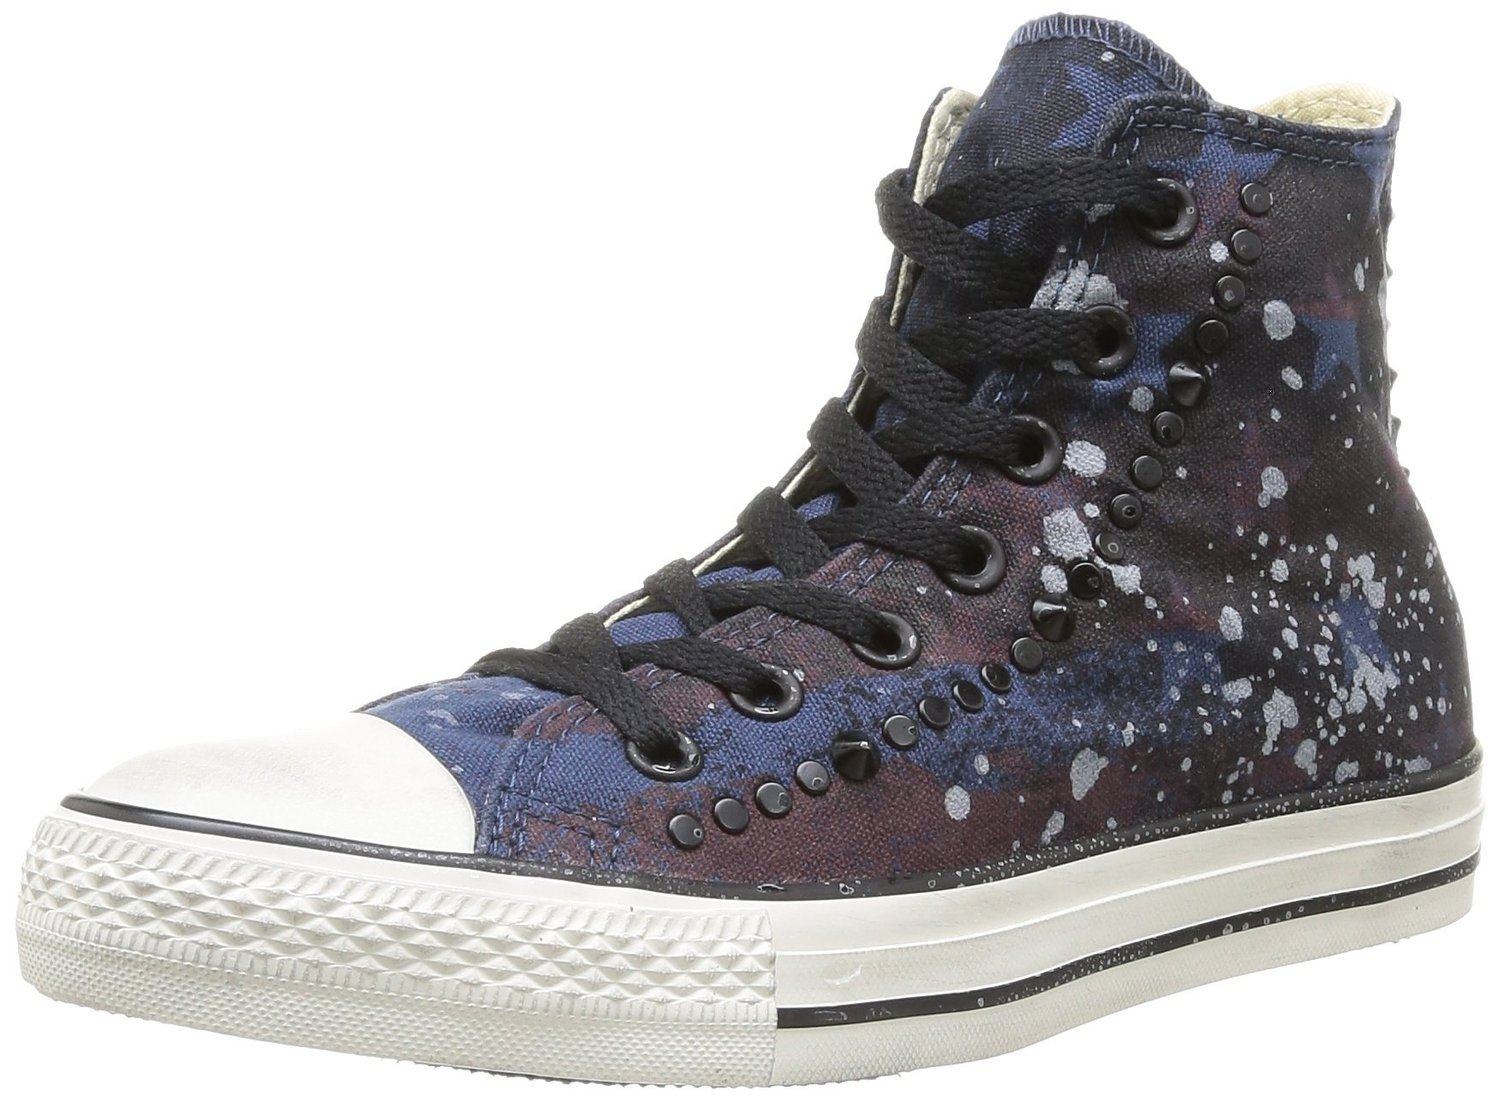 3b6acc363979 Converse Chuck Taylor All Star Studded Hi Navy Unisex Limited Edition  Stars